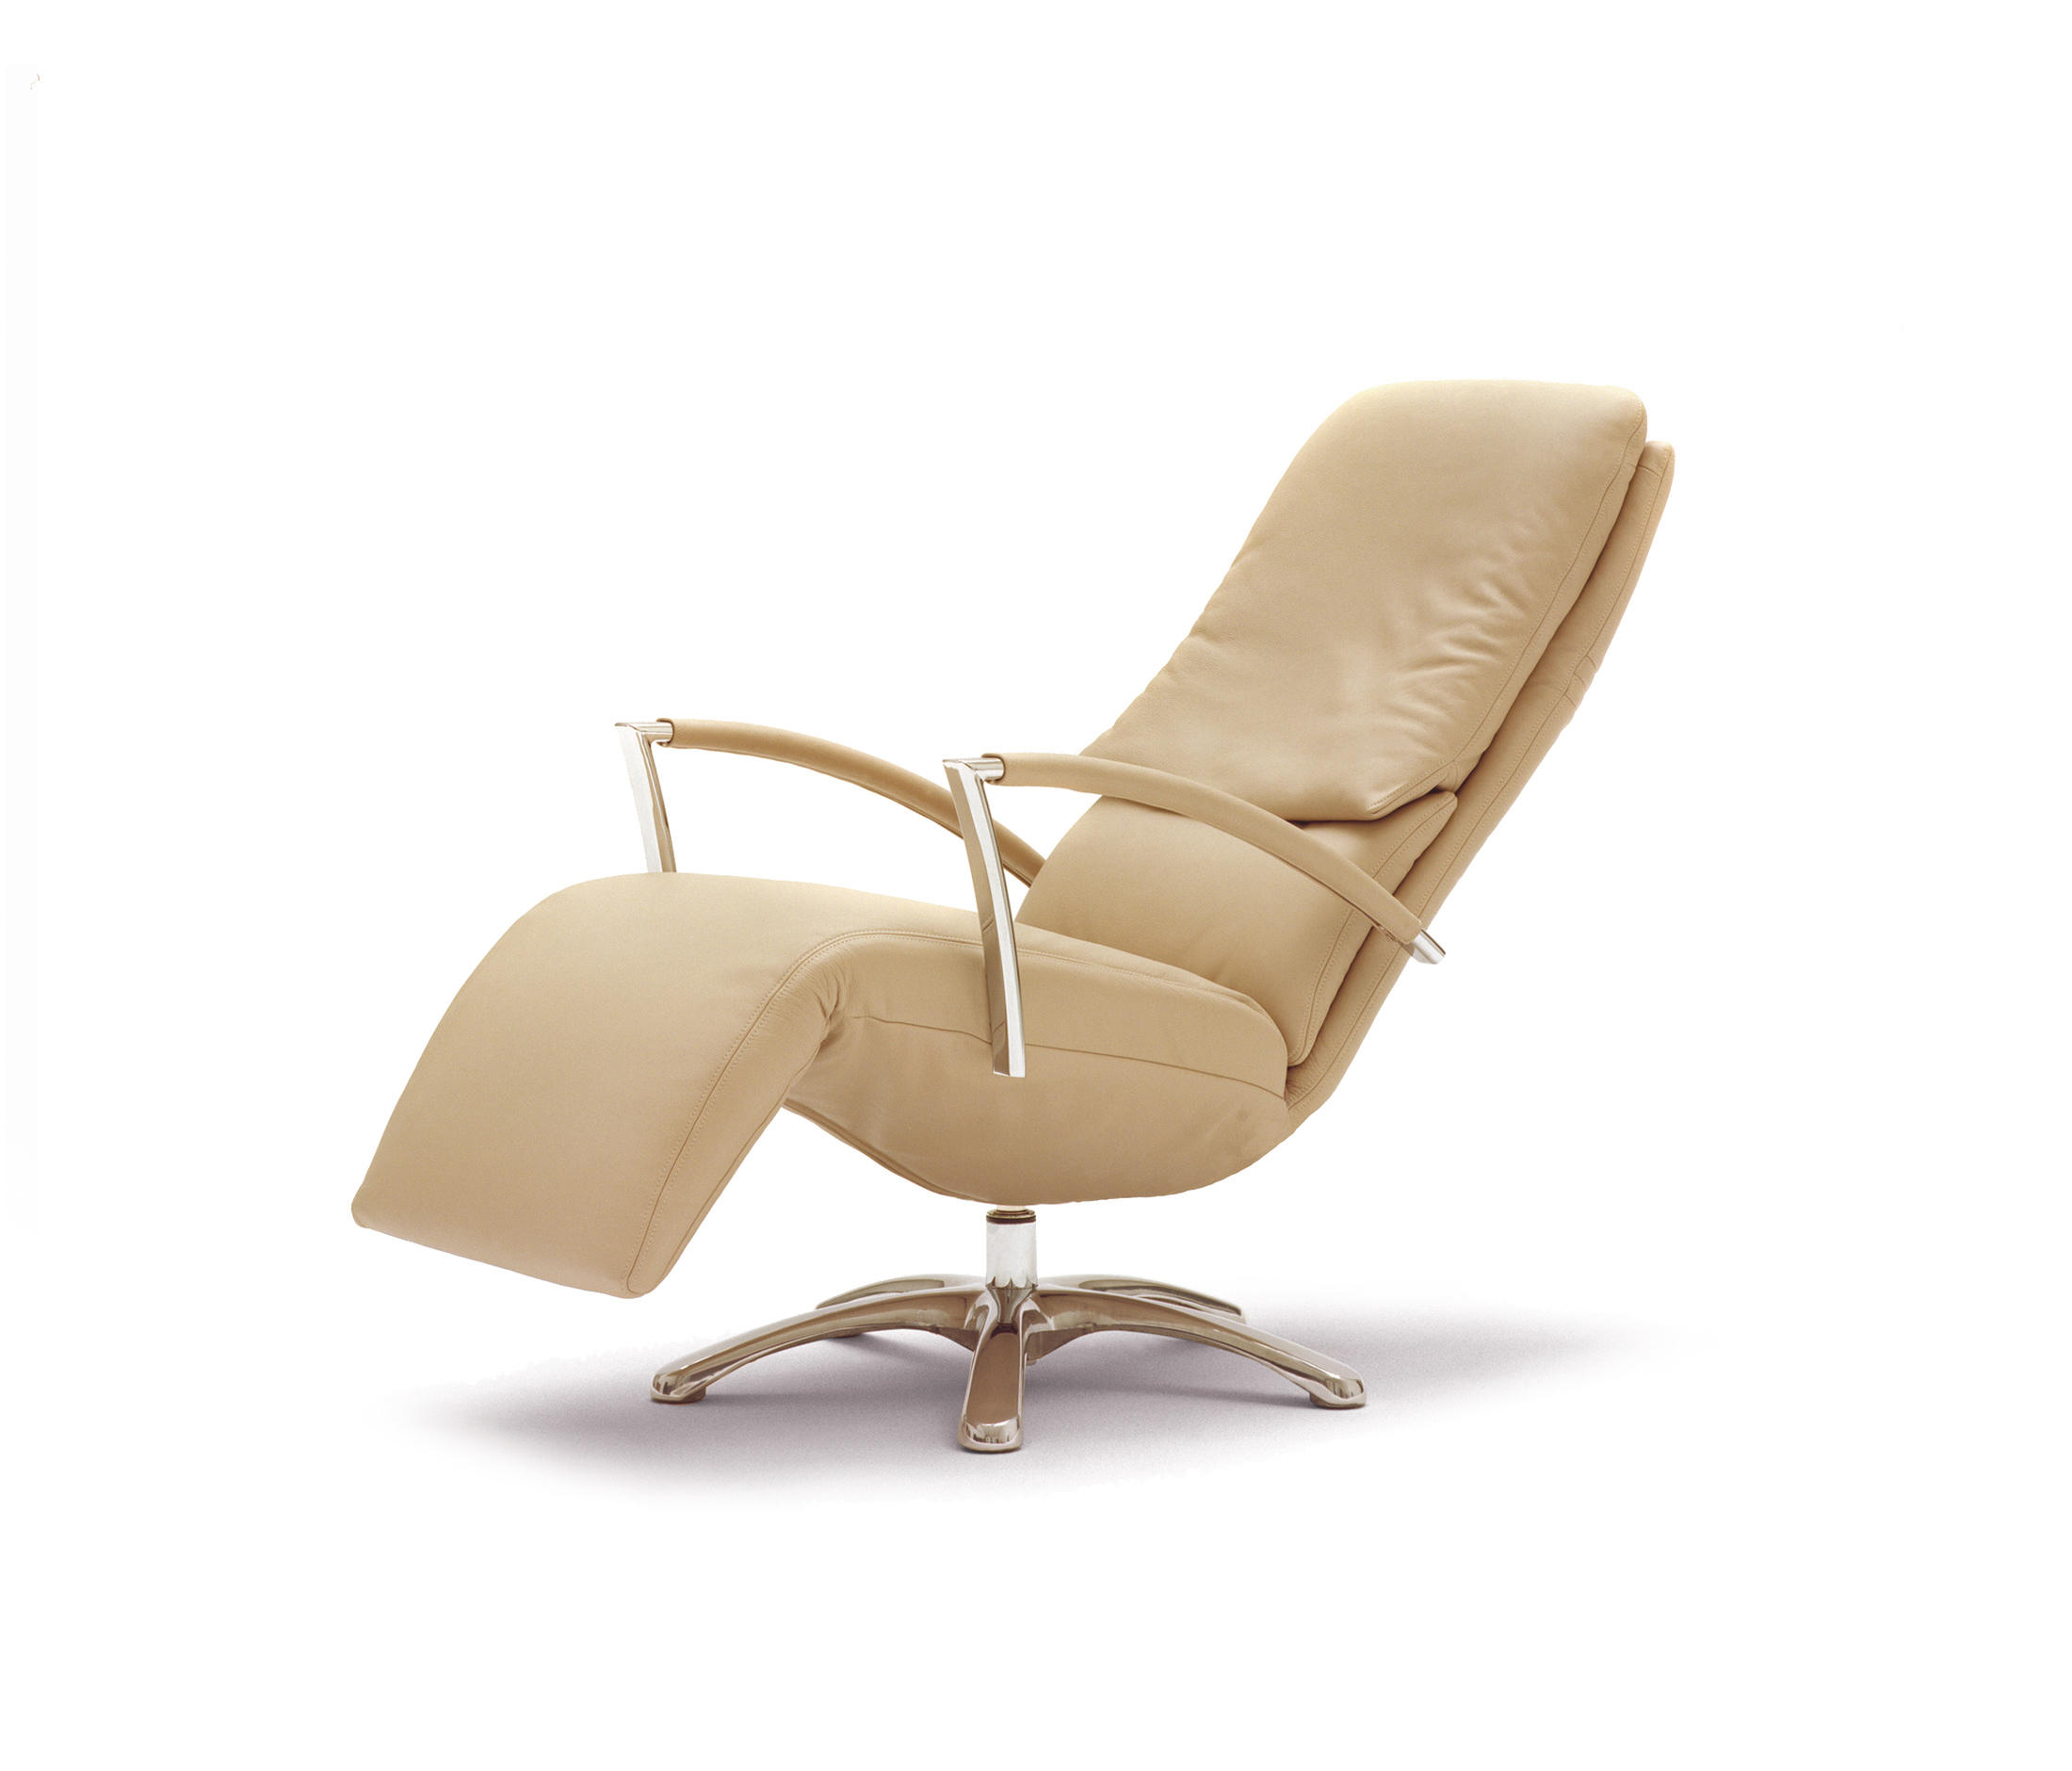 Dayton Recliners From Durlet Architonic